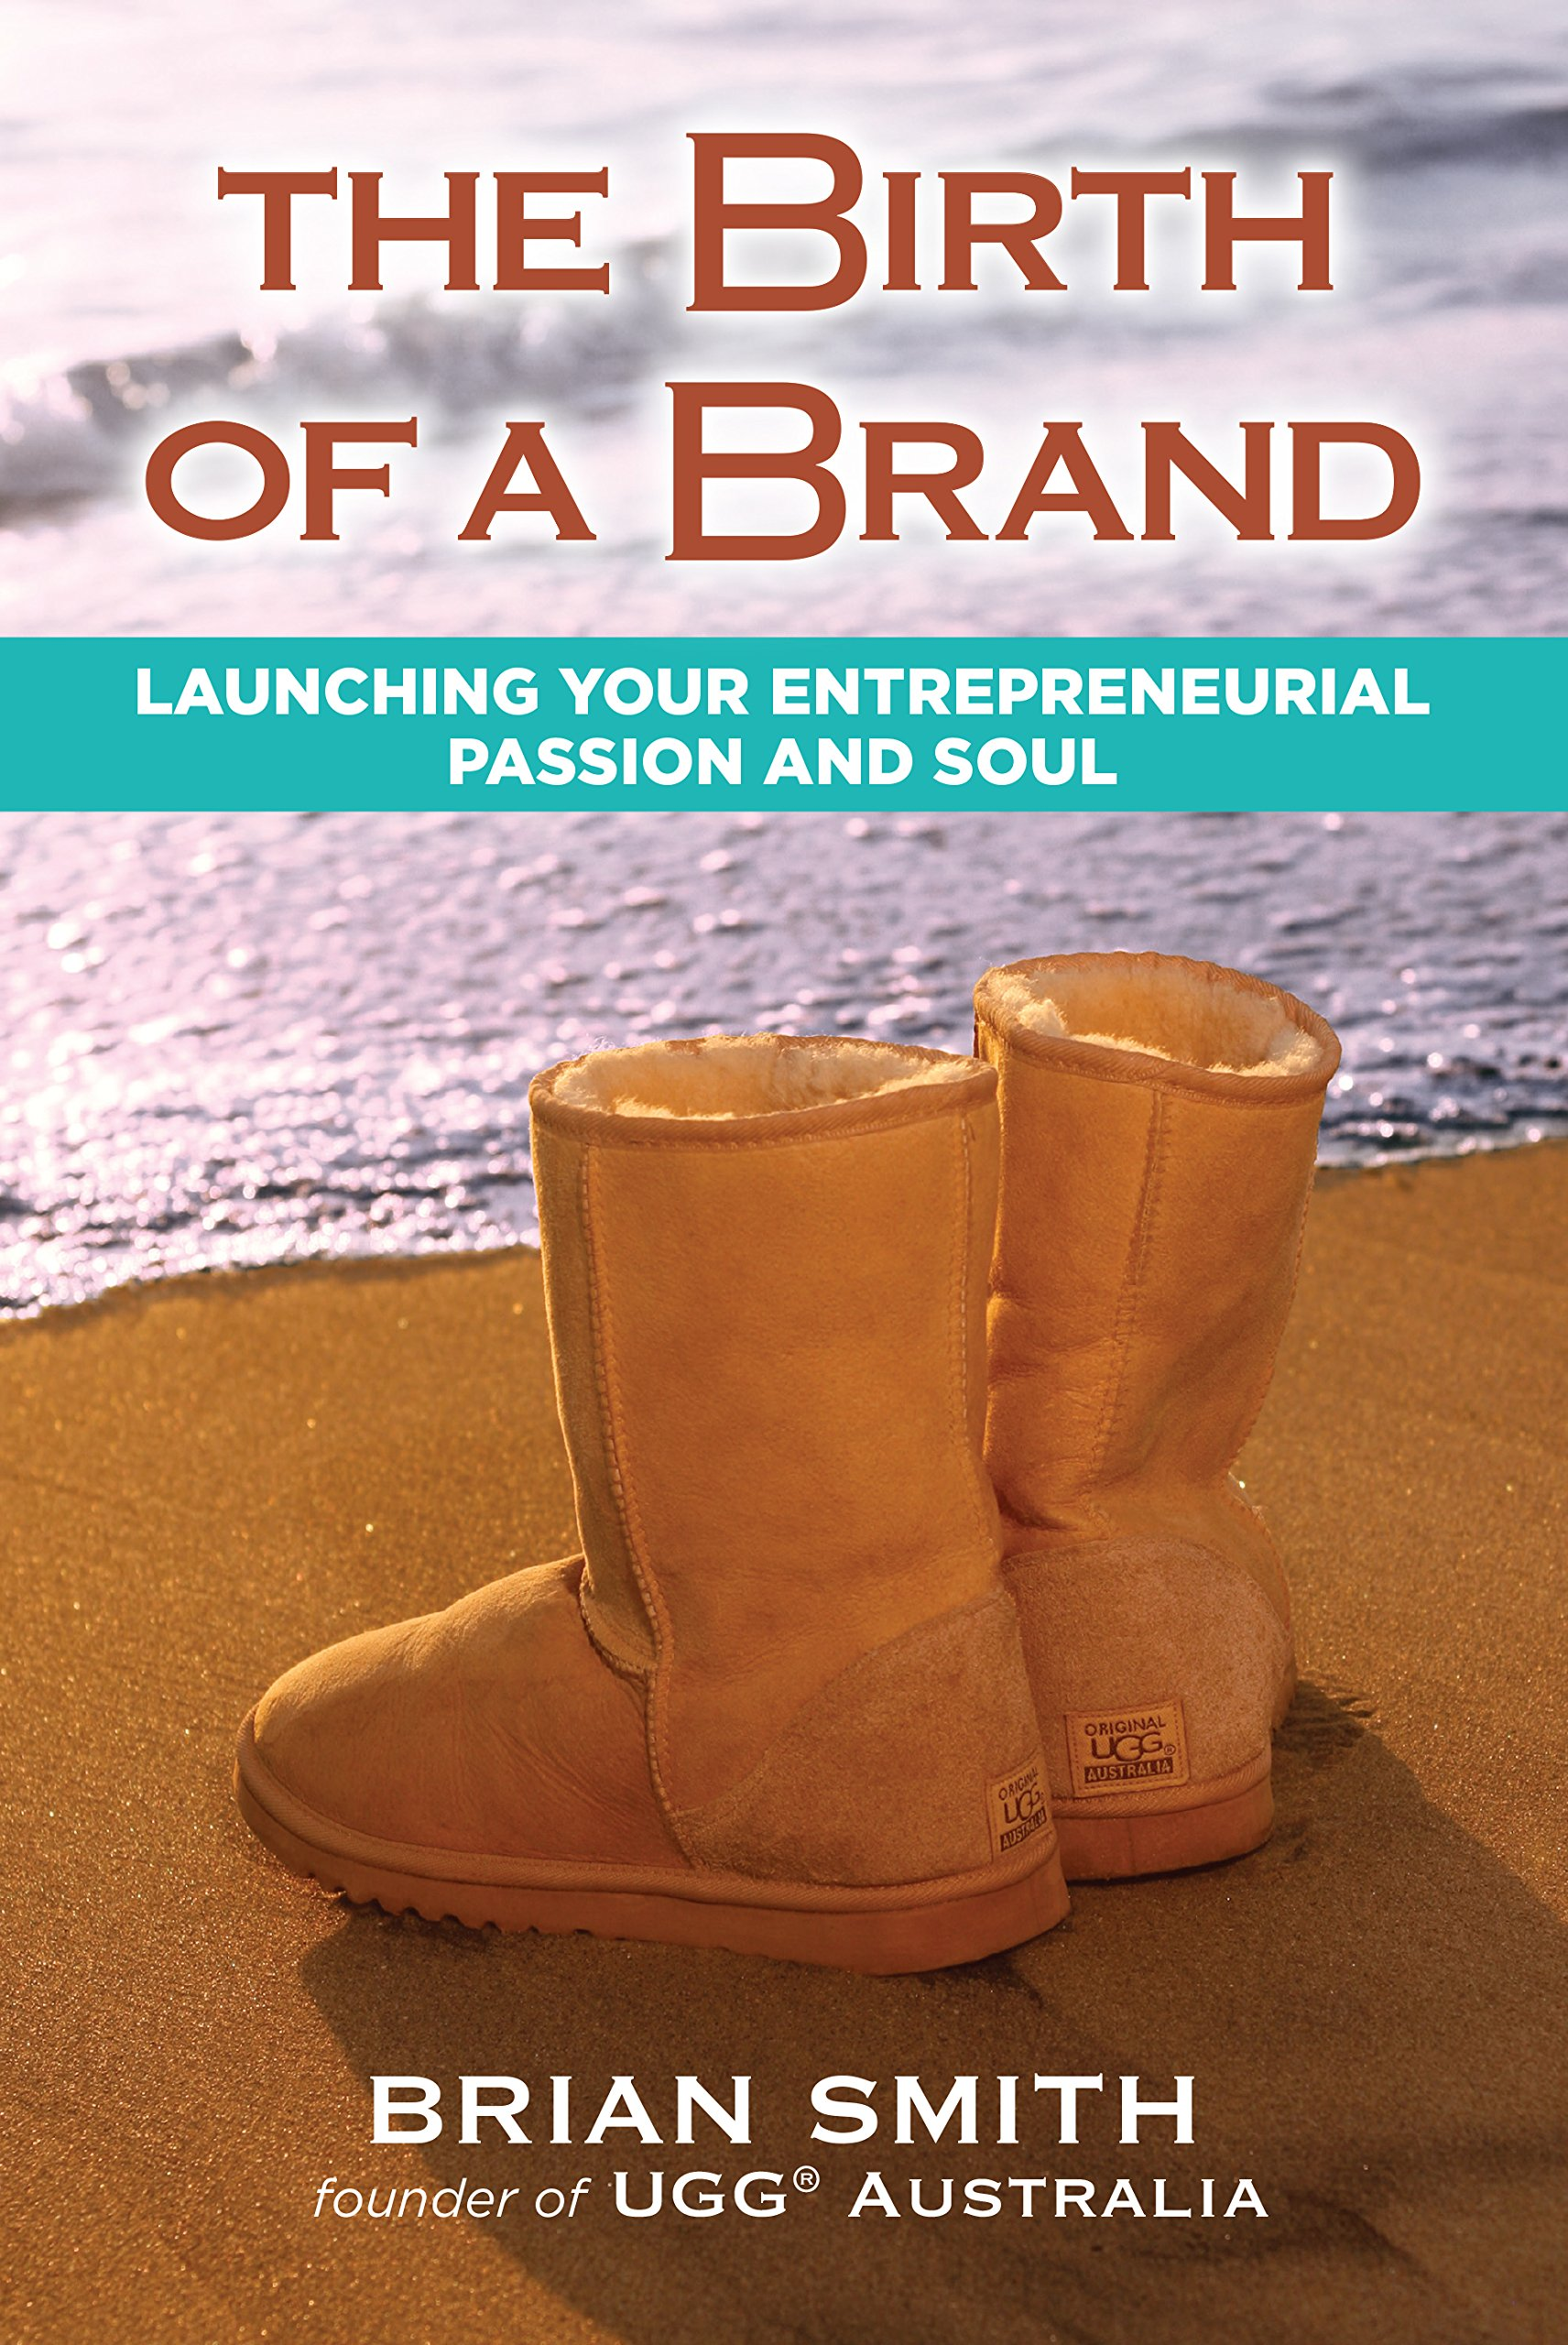 c09a2efbd95 The Birth of a Brand: Brian Smith: 9781582705354: Amazon.com: Books